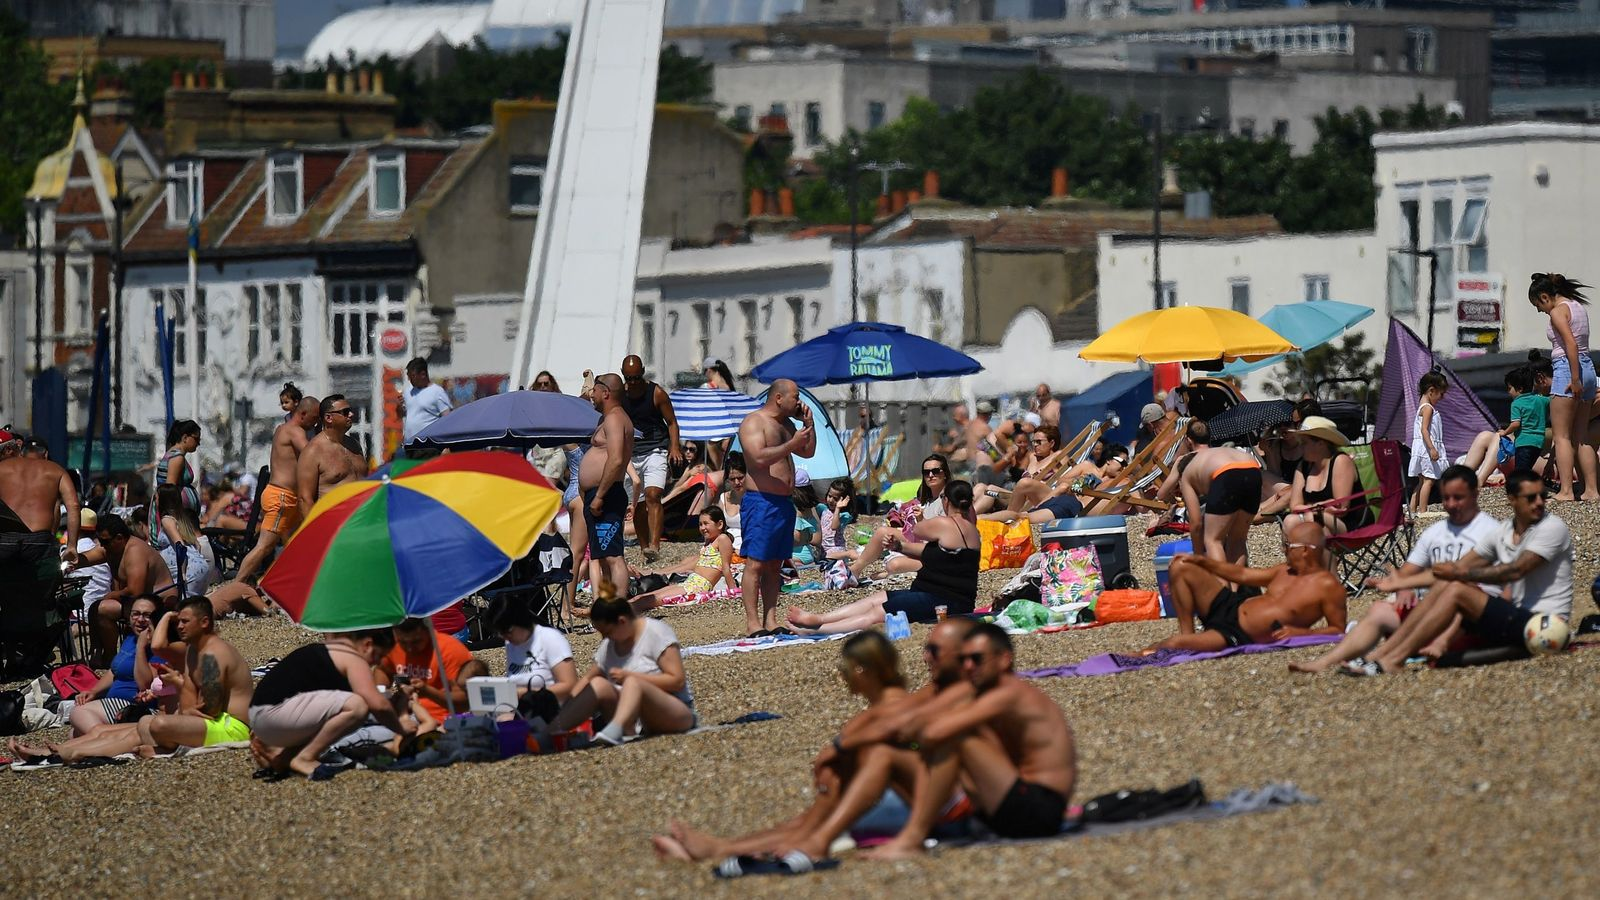 What lockdown? Britons flock to beaches as UK basks in hot bank holiday weather thumbnail